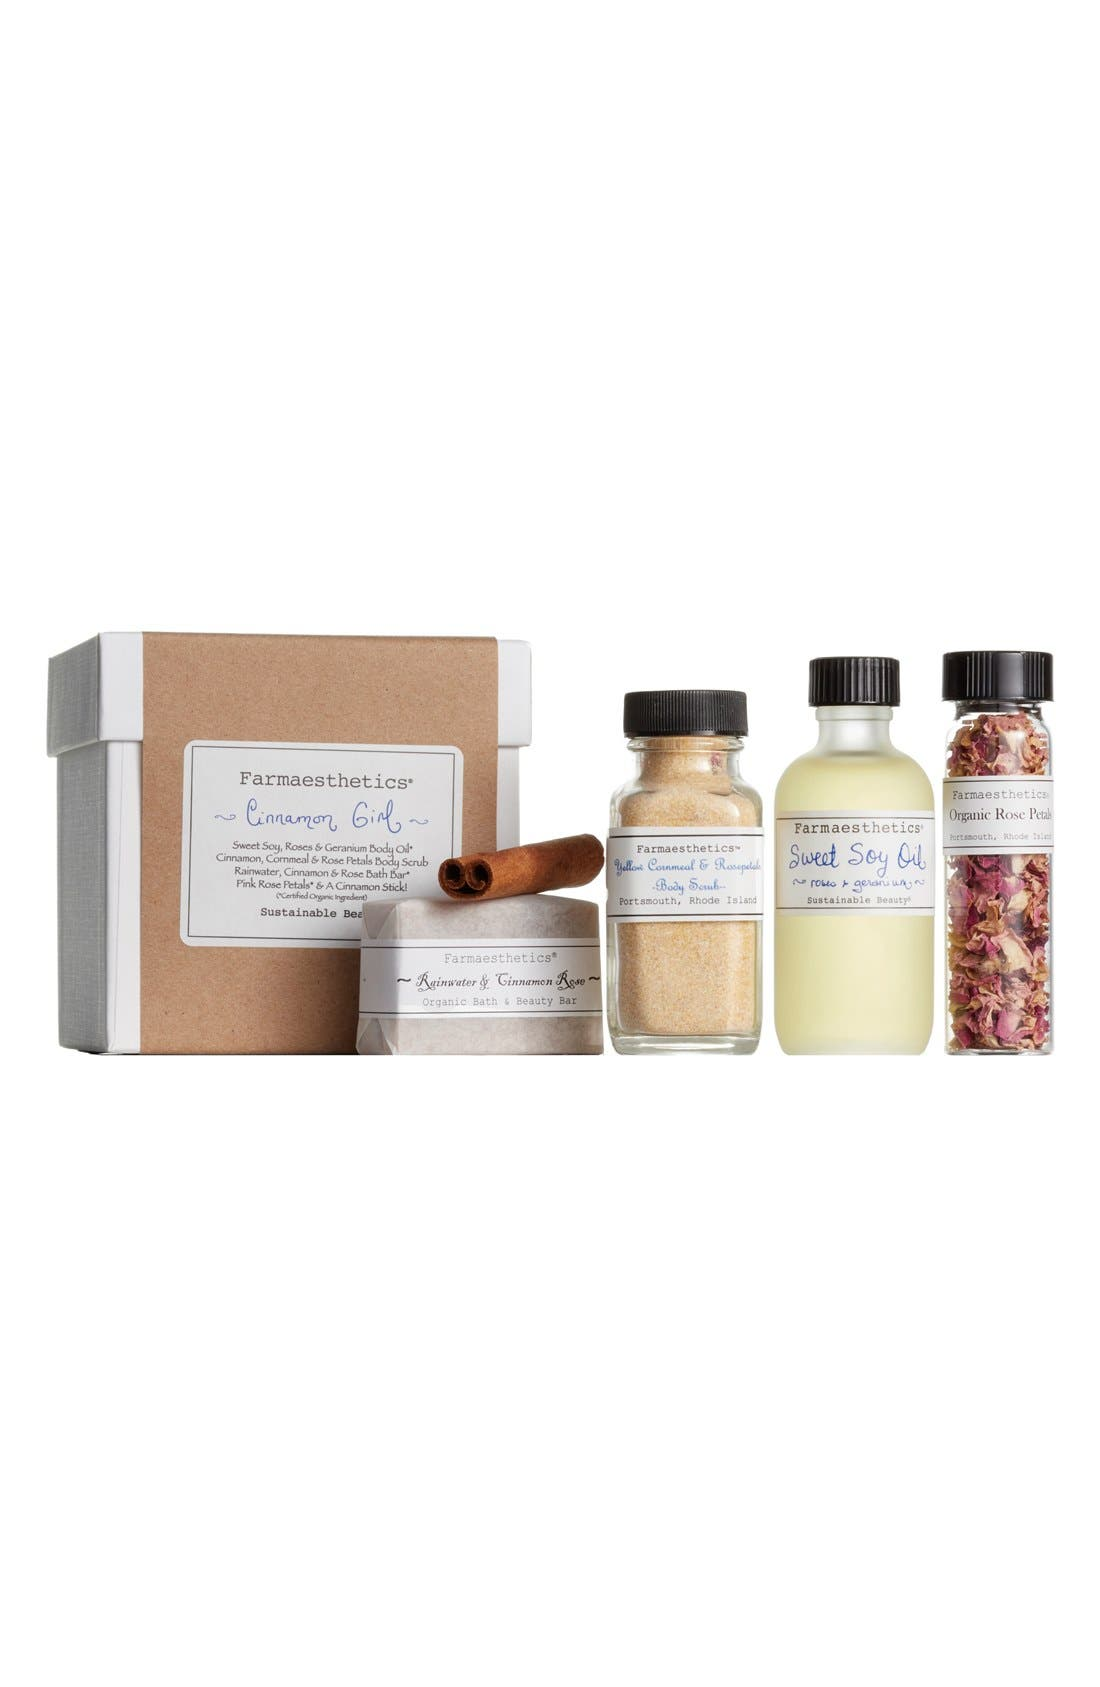 Farmaesthetics Cinnamon Girl Bath & Body Set